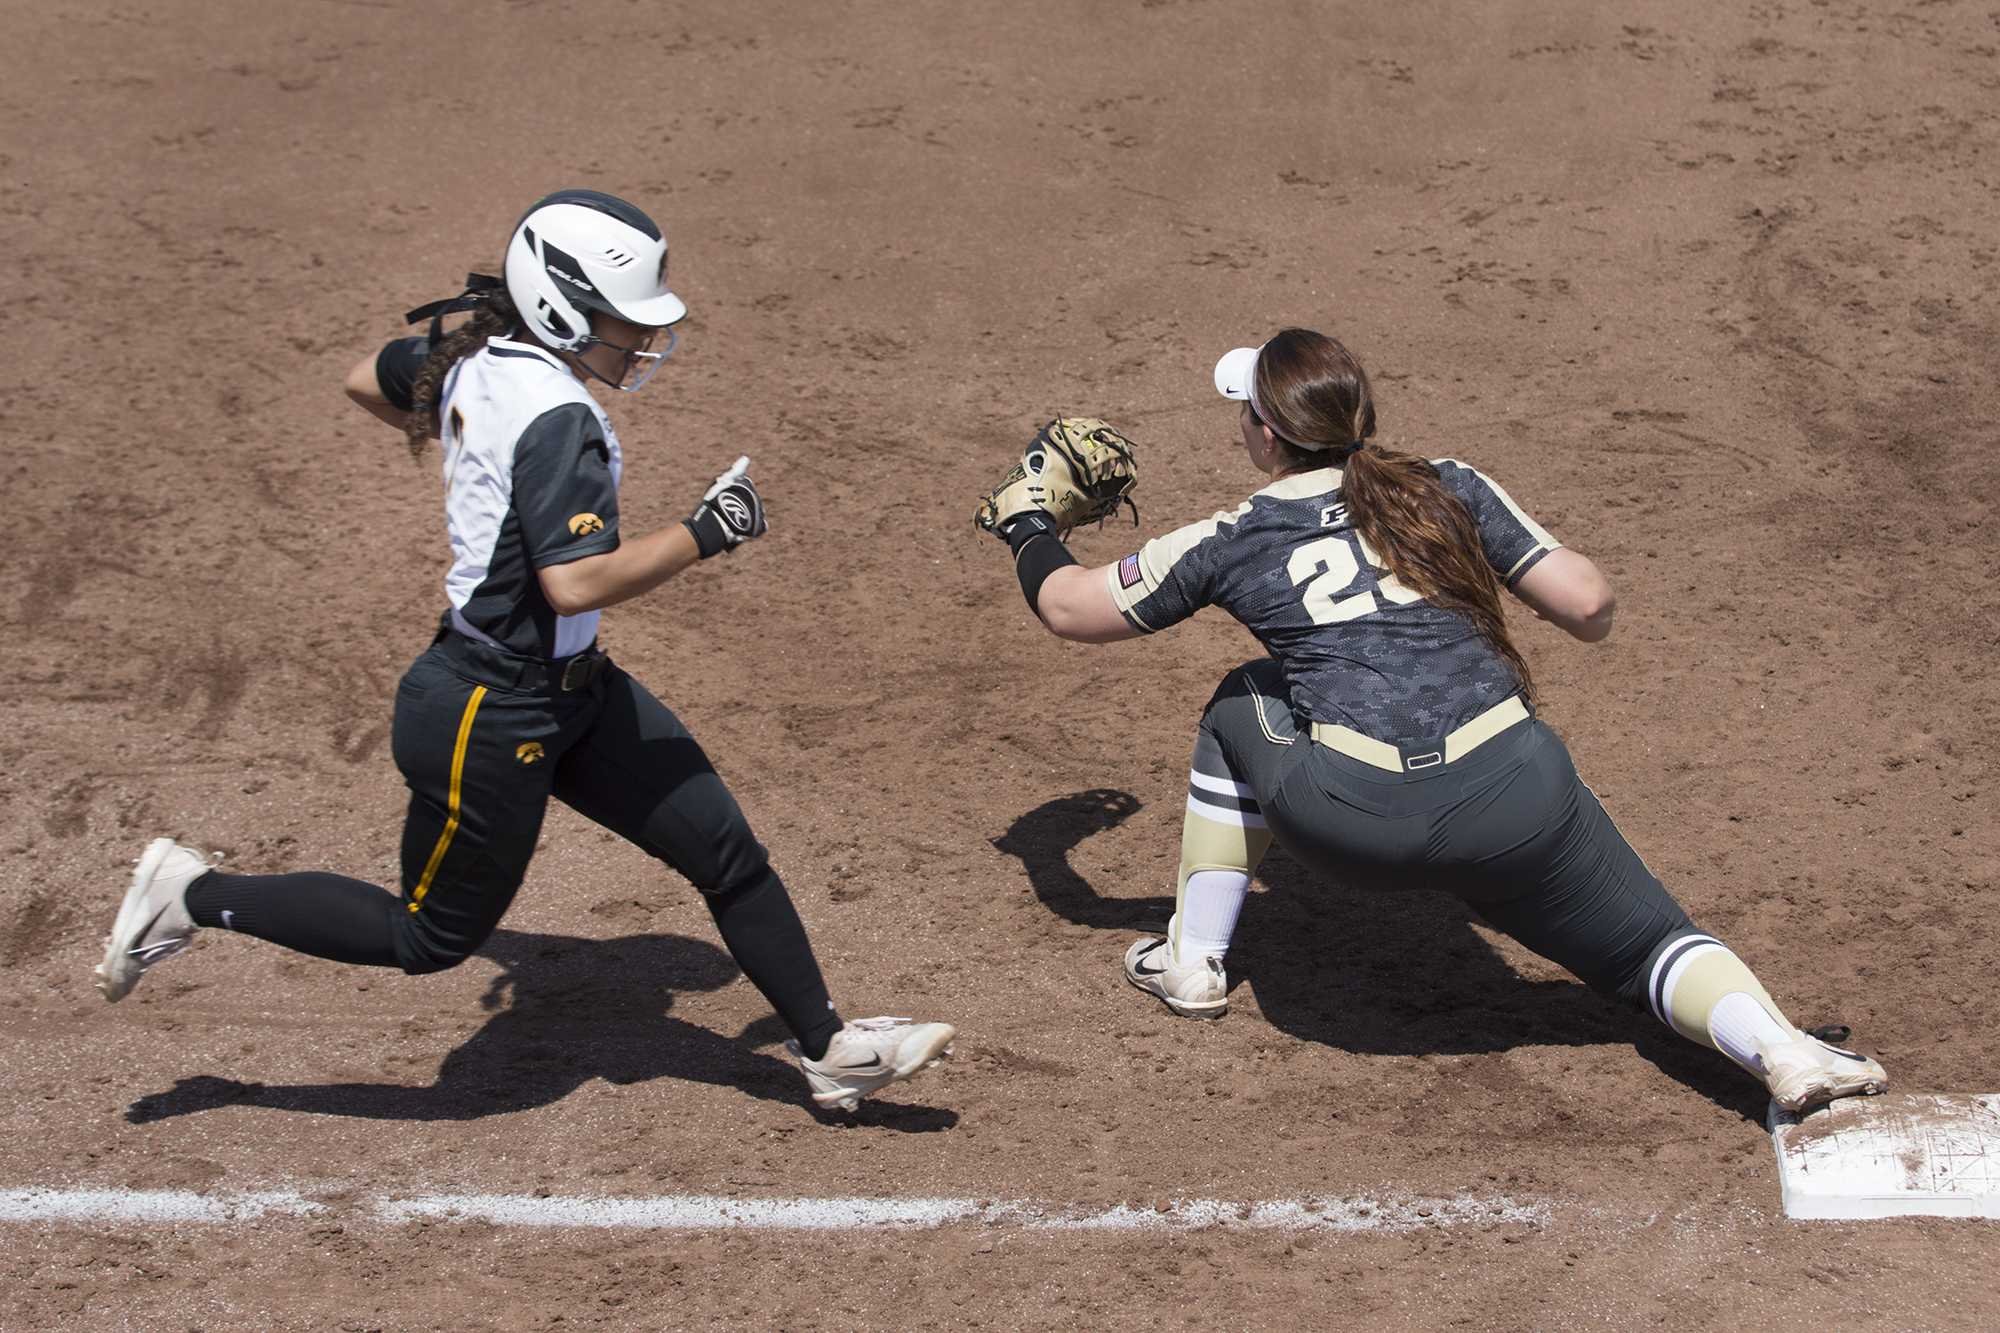 Iowa's Lea Thompson is tagged out by Purdue's Lexi Huffman during a softball game between Iowa and Purdue on Sunday, May 6, 2018. The Boilermakers spoiled the Hawkeyes' senior day, 6-0. (Shivansh Ahuja/The Daily Iowan)